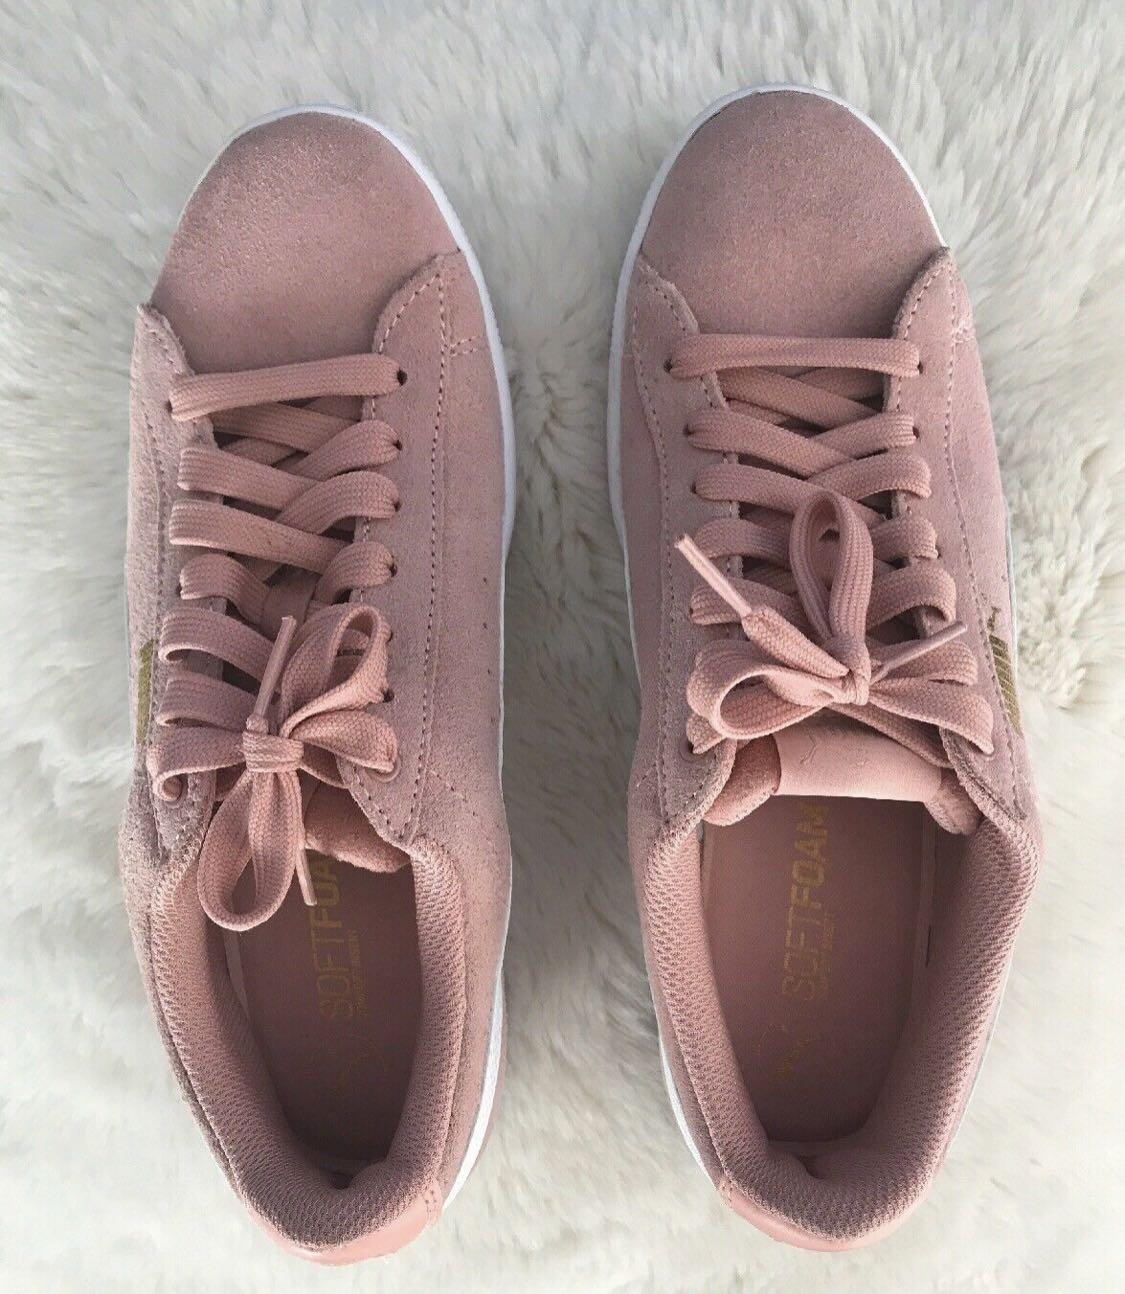 Puma Vikky Classic Pink Suede Sneakers